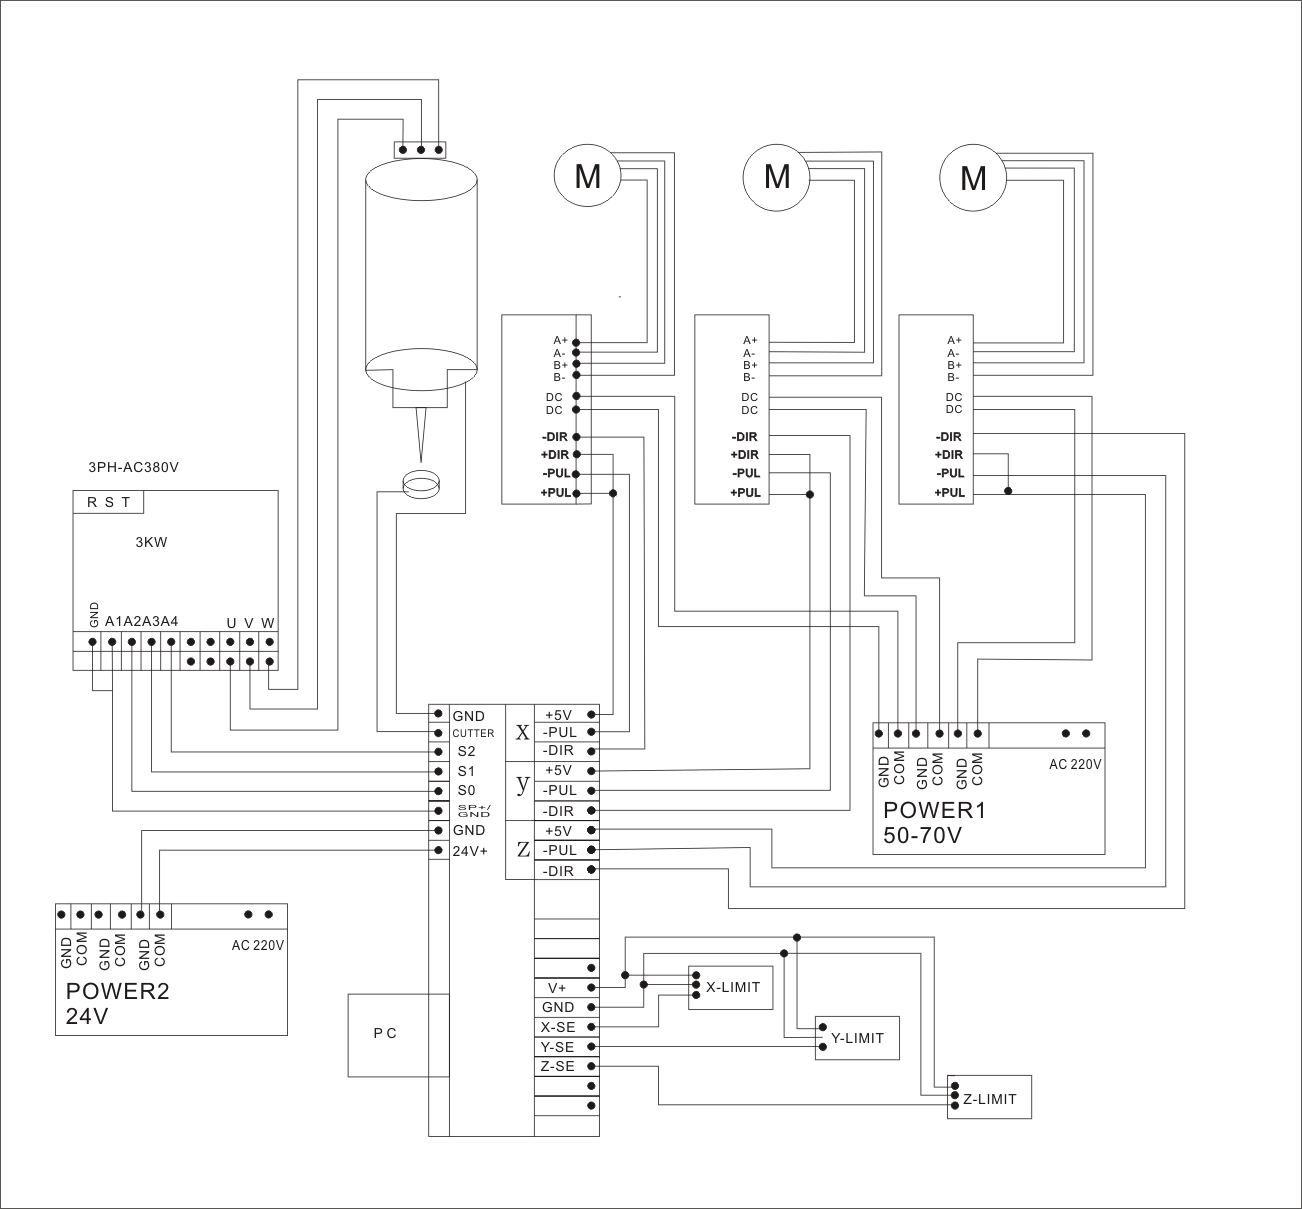 5 axis cnc breakout board wiring diagram 93 chevy silverado radio for woodworking router